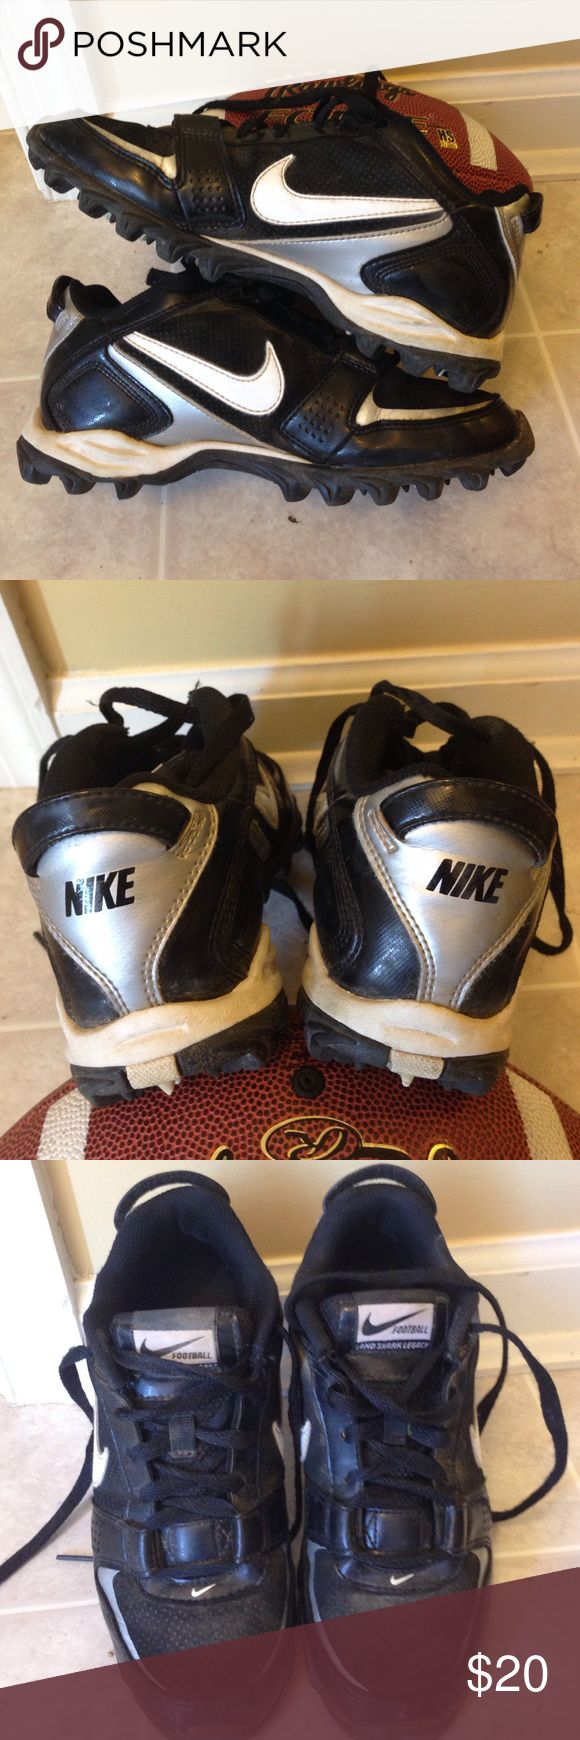 Nike Boys Football Cleats Size 4.5Y. Barely used! Great condition boys football Cleats. Can be used for baseball as well. Almost new! Nike Shoes Sneakers